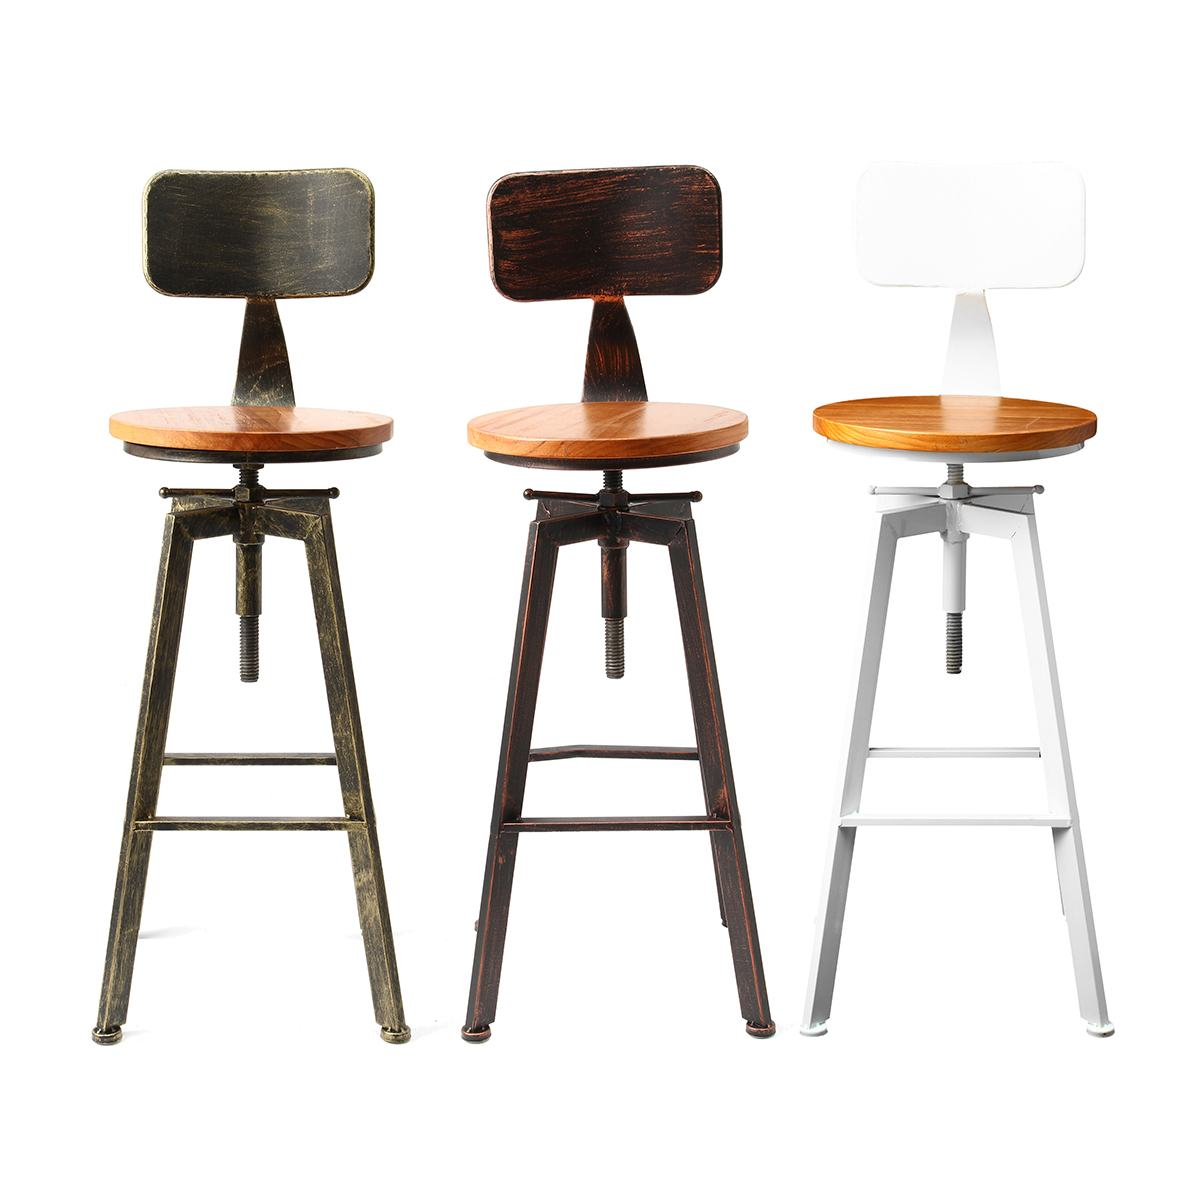 Simple Modern Retro Home High Bar Stool Bar Chair Bar Chair Lift Chair High Stool Rotating Bar Table And Chair Stool Products Hot Sale Furniture Bar Chairs